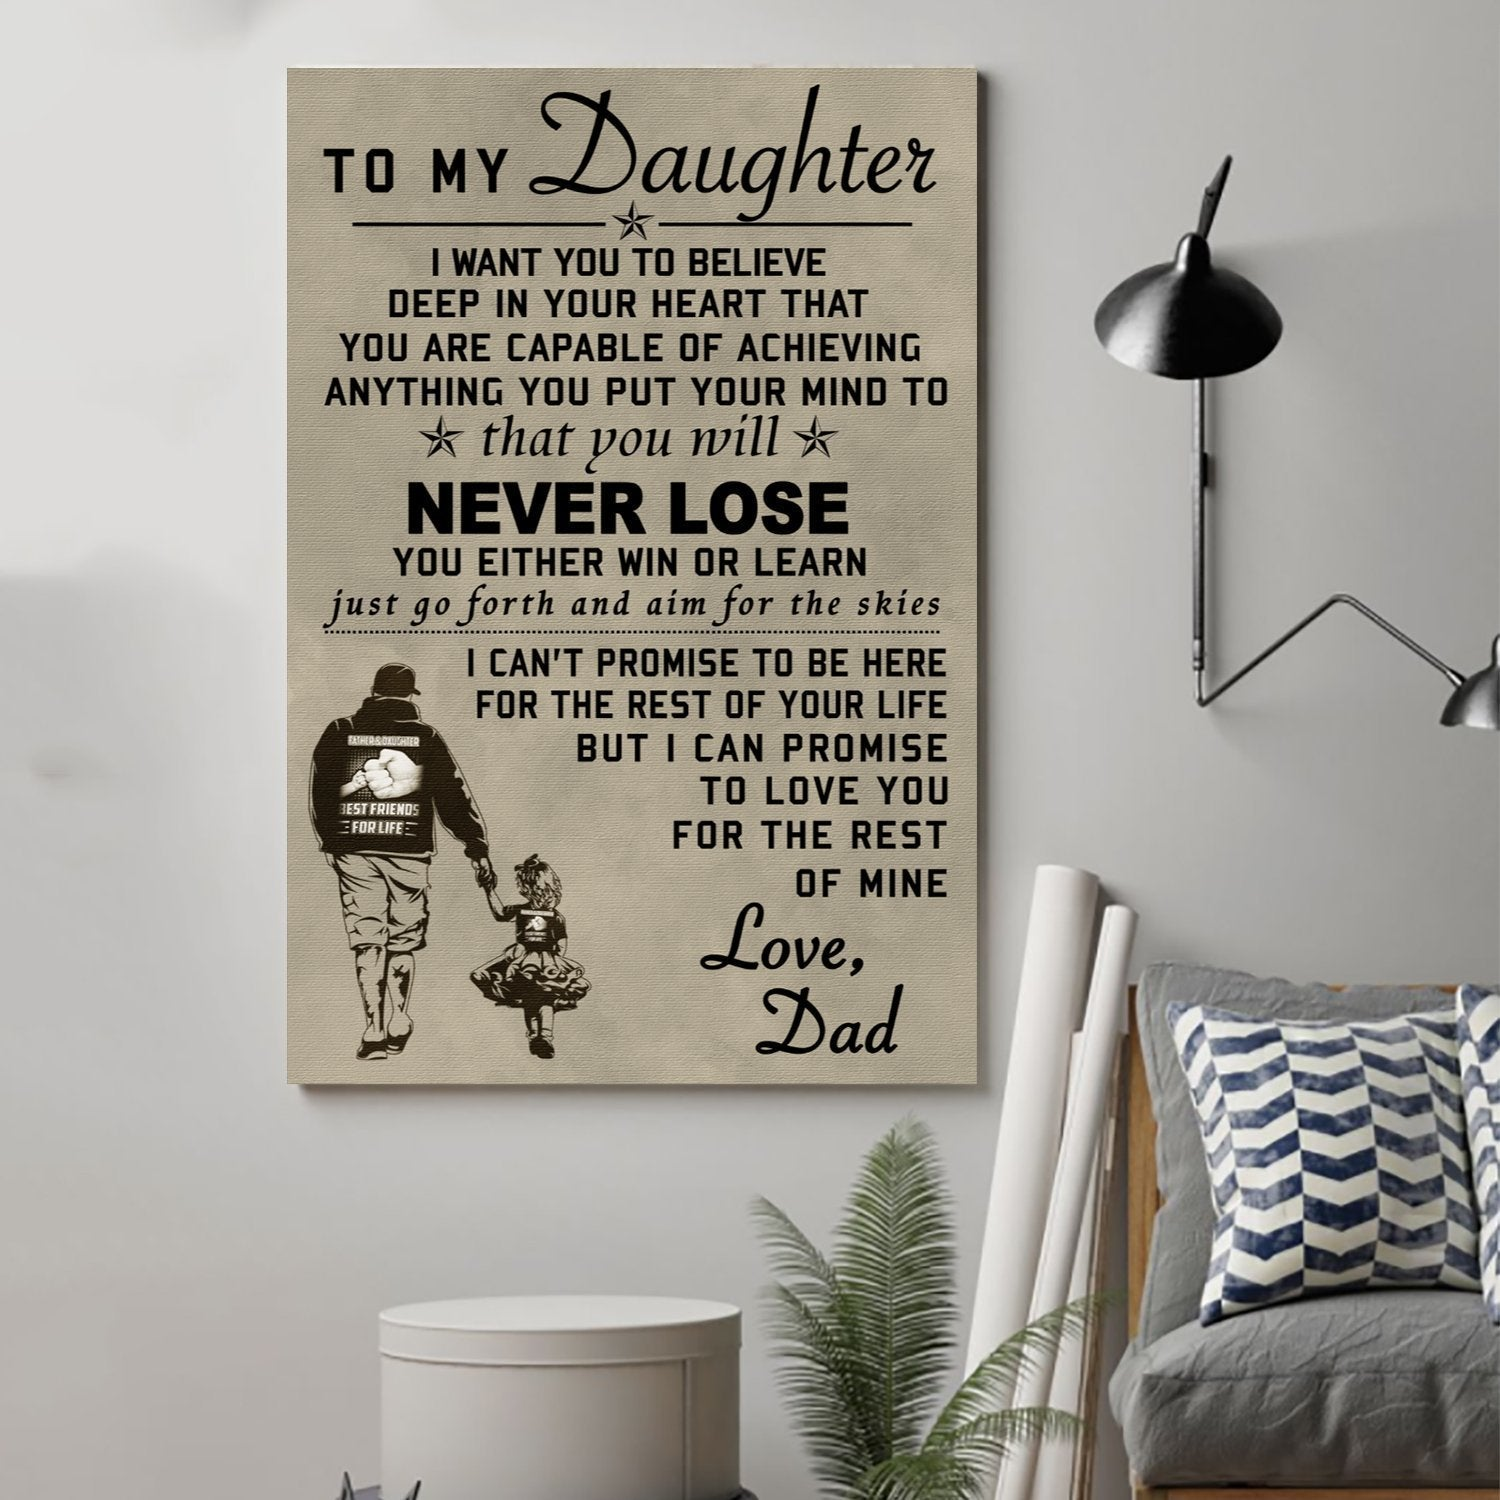 (cv138) family Poster - to my daughter